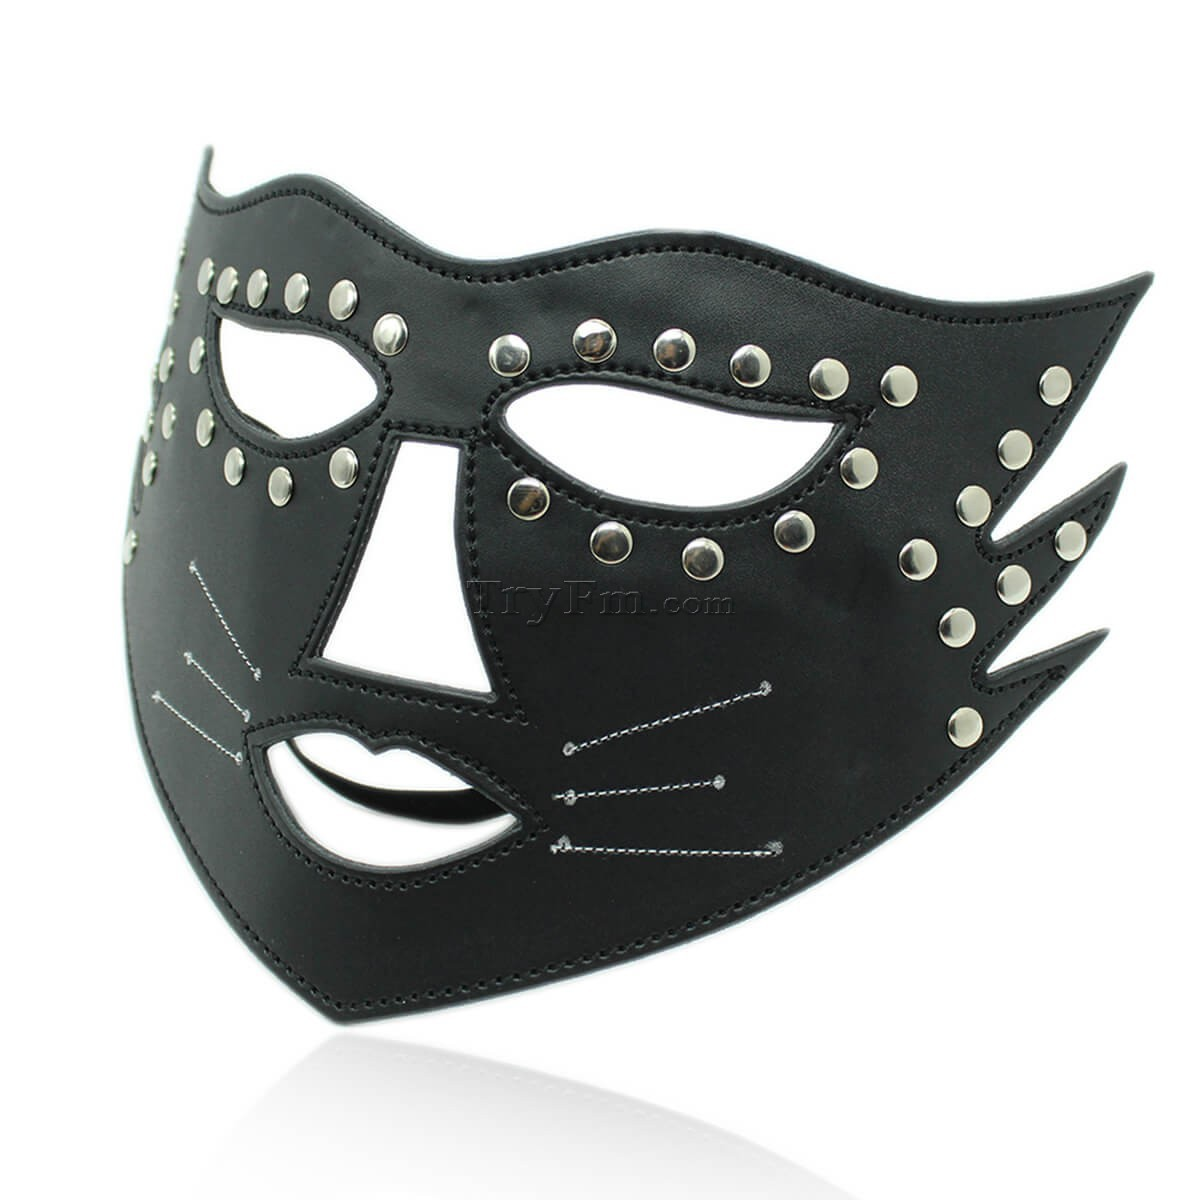 12-cat-face-mask2.jpg